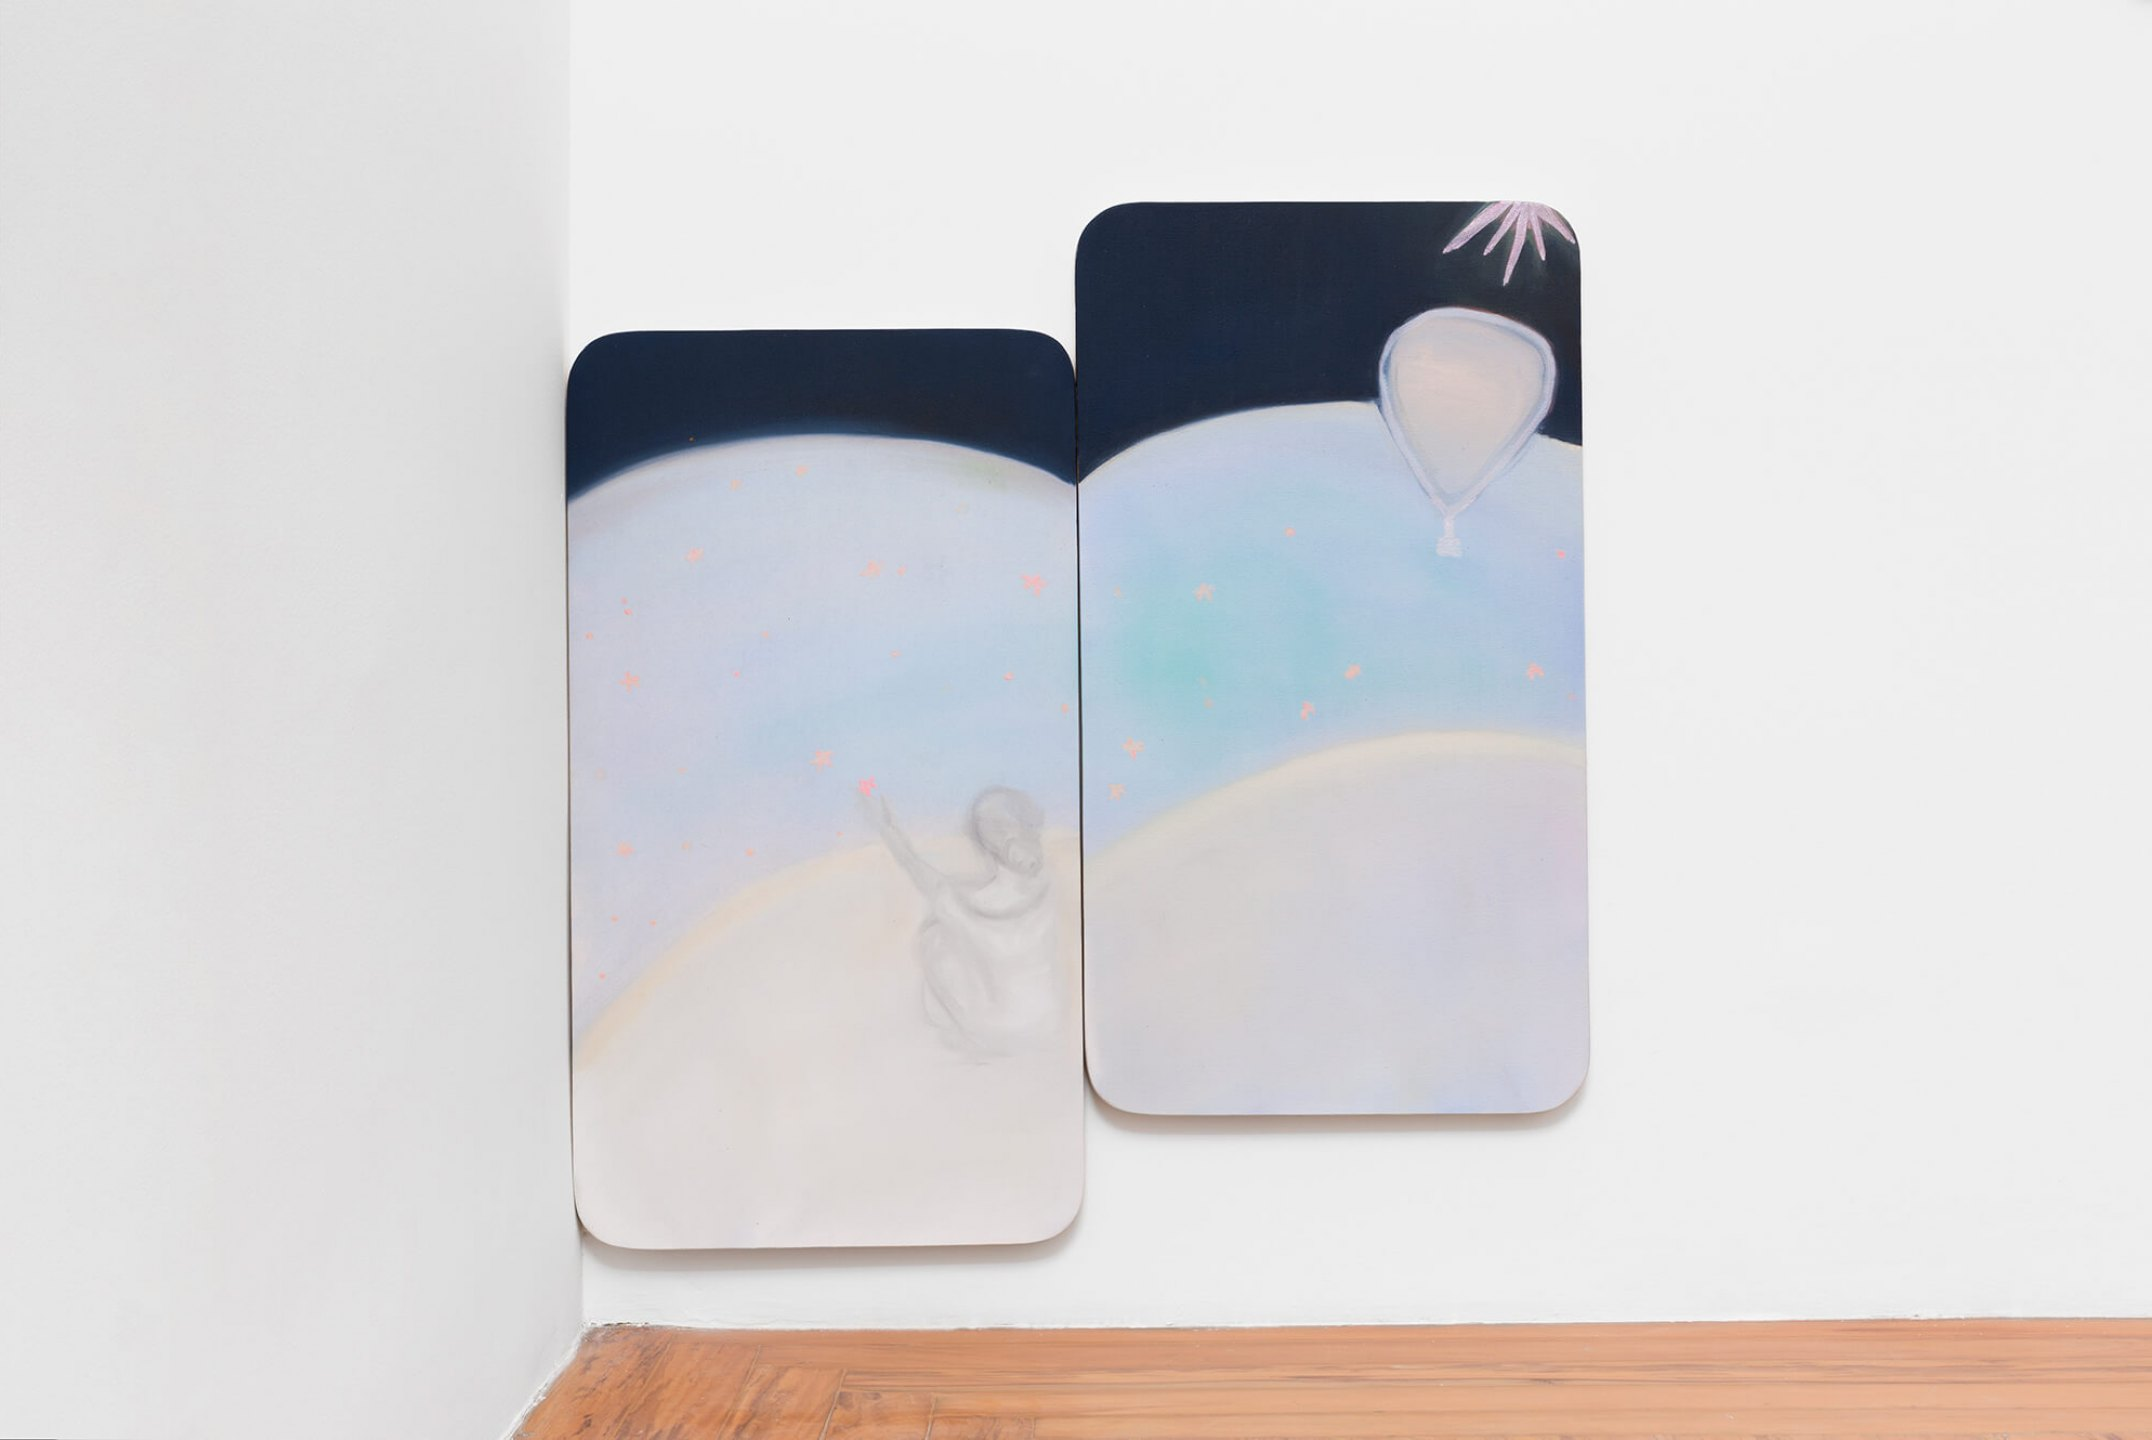 Marina Perez Simão, <em>Untitled,</em> 2015, oil and iridescent pigment on canvas, 90 × 50 × 2 cm  - Mendes Wood DM